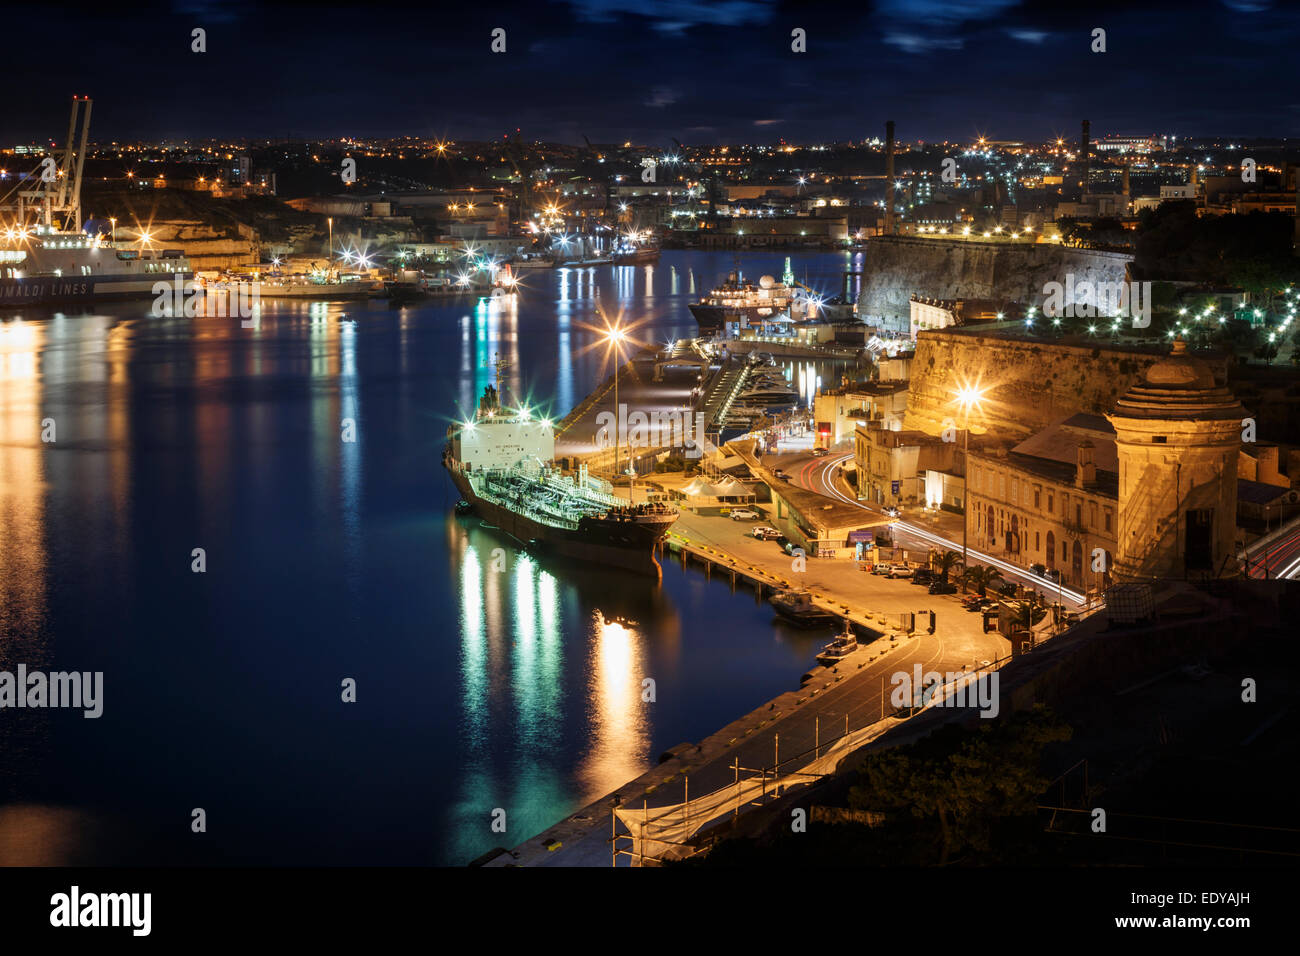 Grand Harbour and Waterfront of Valletta at night, Malta - Stock Image